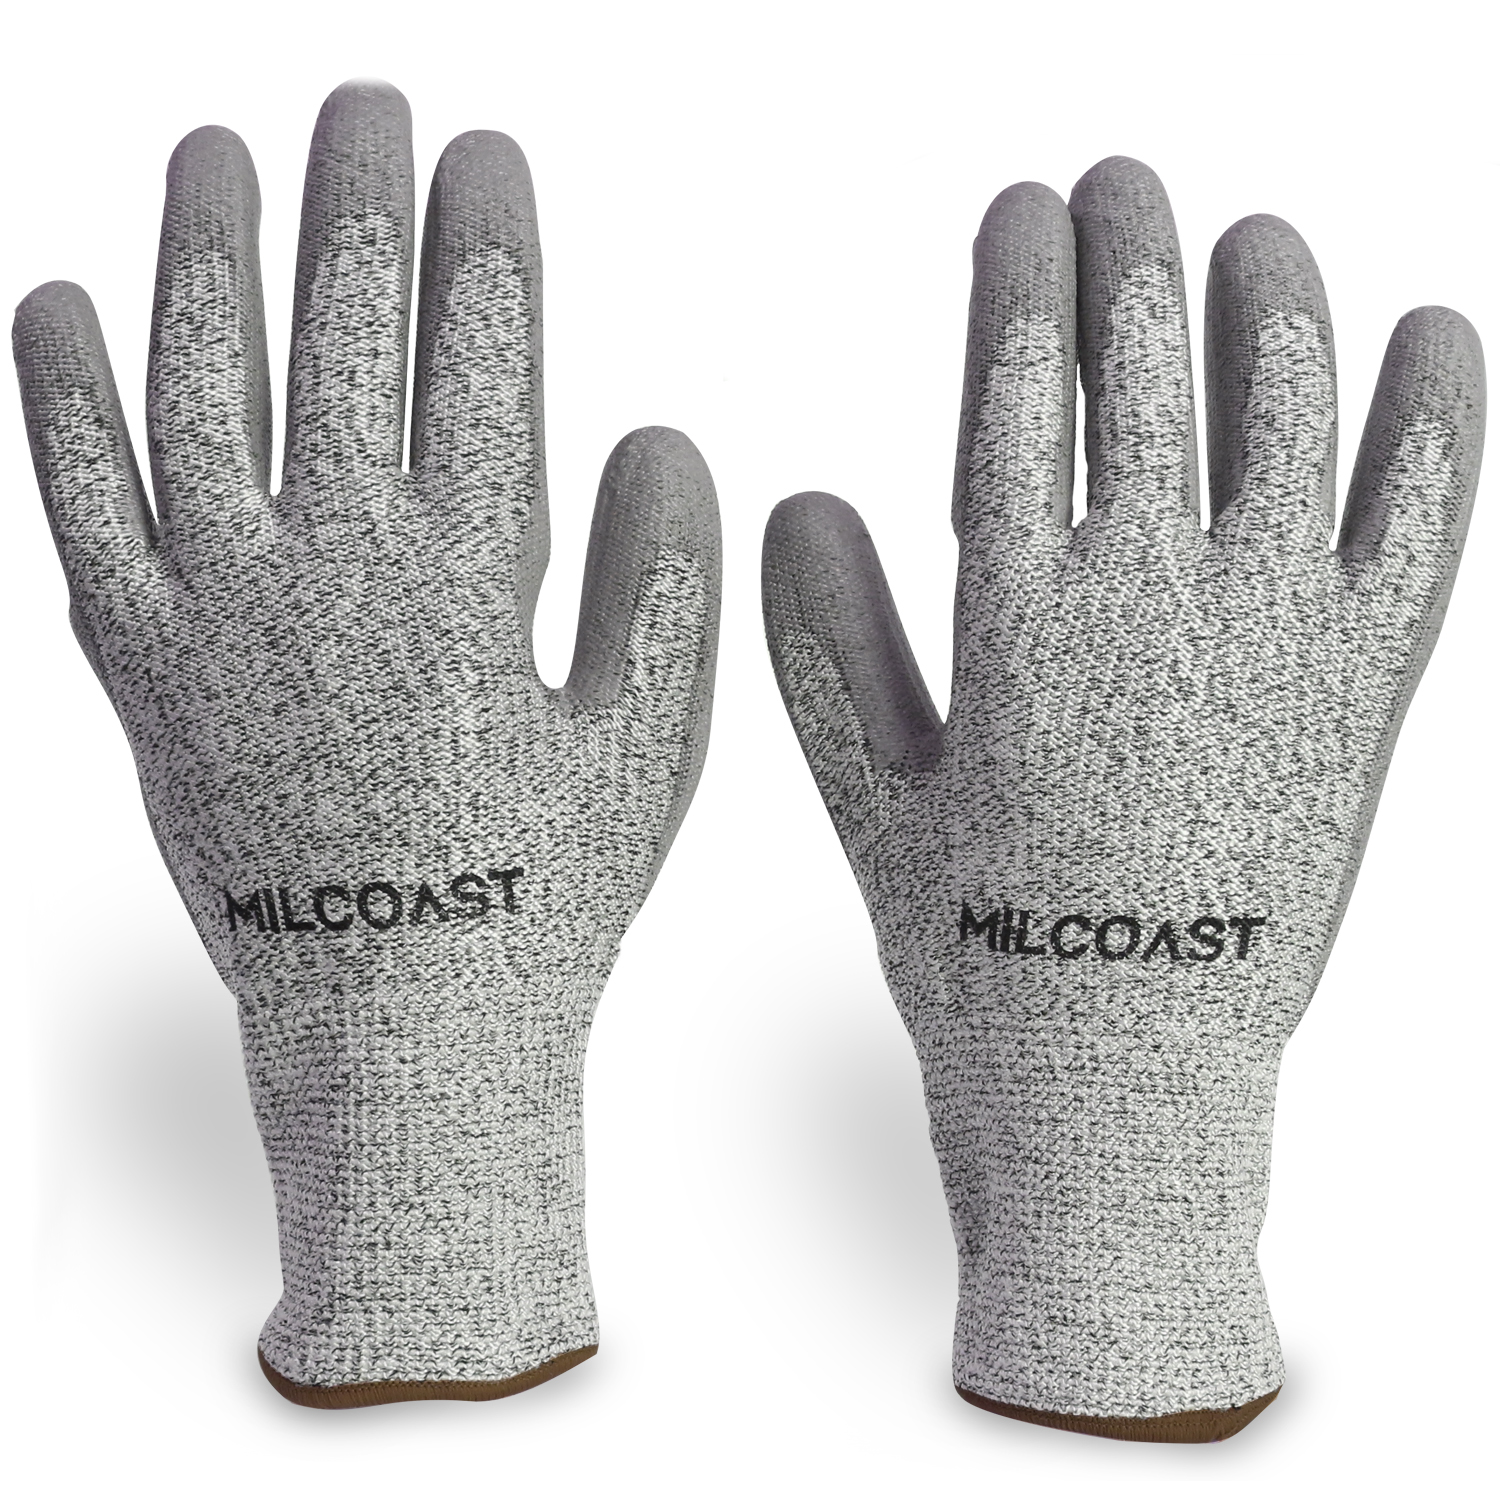 Milcoast Level 5 Cut Resistant Gloves - Polyurethane Palm Coated for Cutting, Kitchen, Garden, Work and Handling - Pack of 3 Pairs